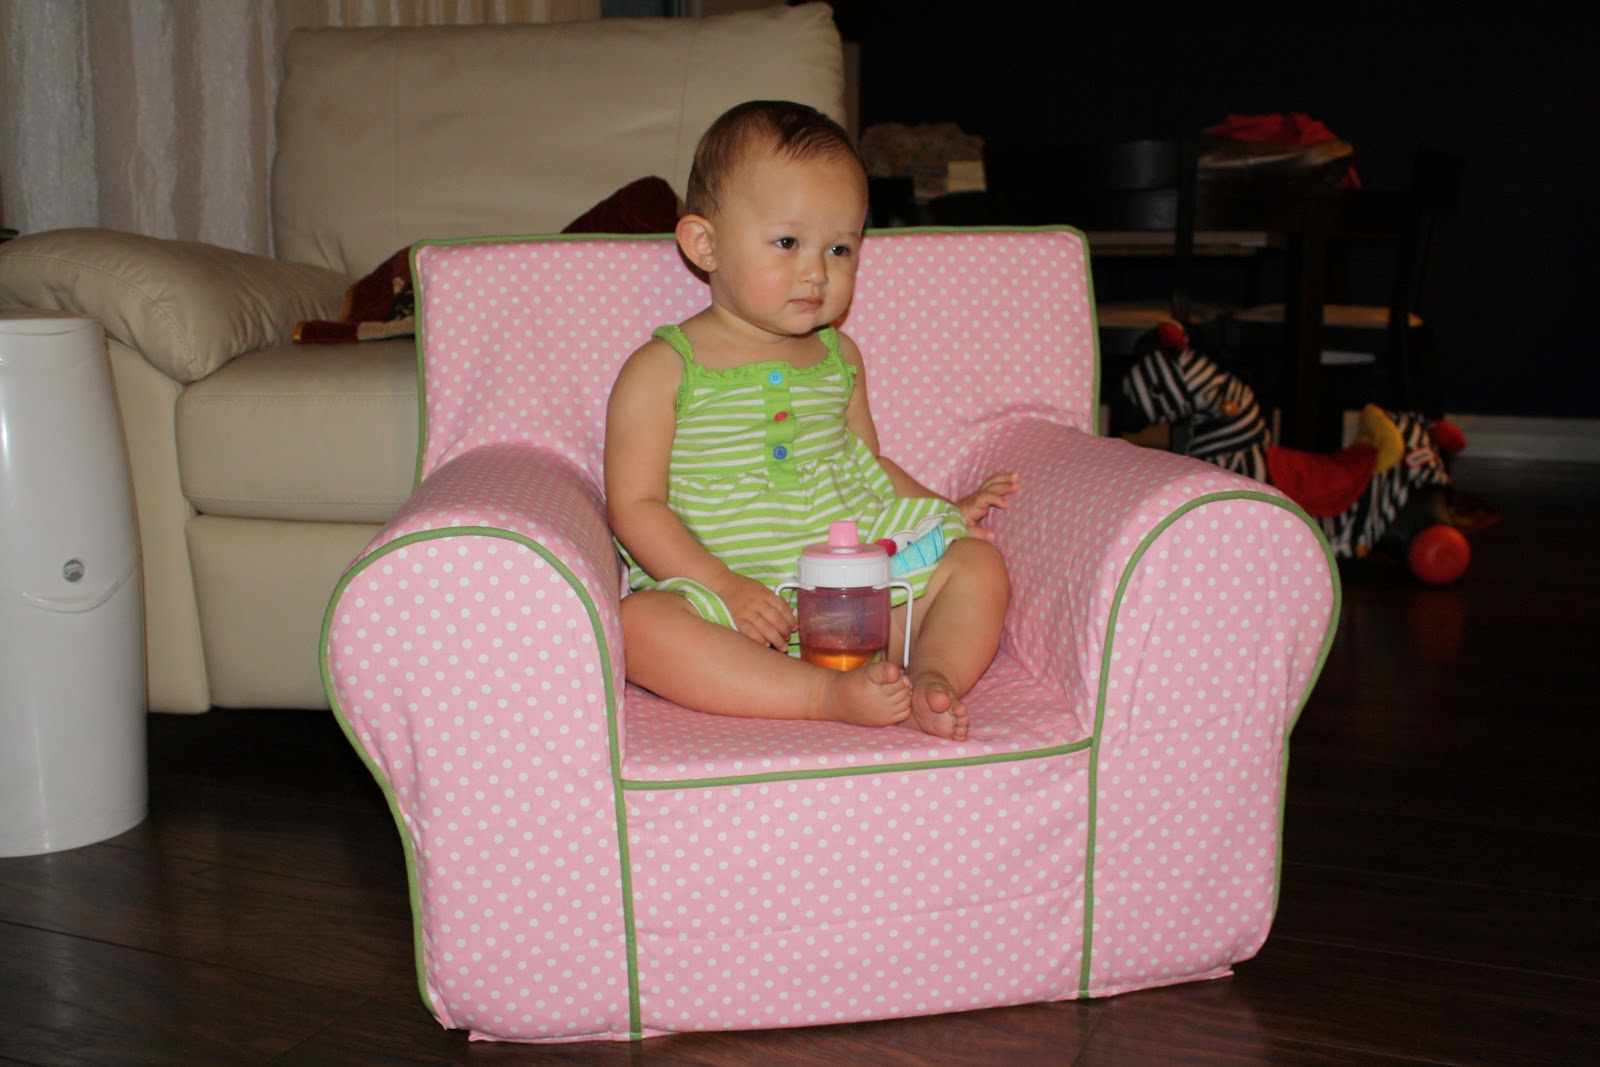 Pottery barn kids my first anywhere chair - Anywhere Chair And Storytime